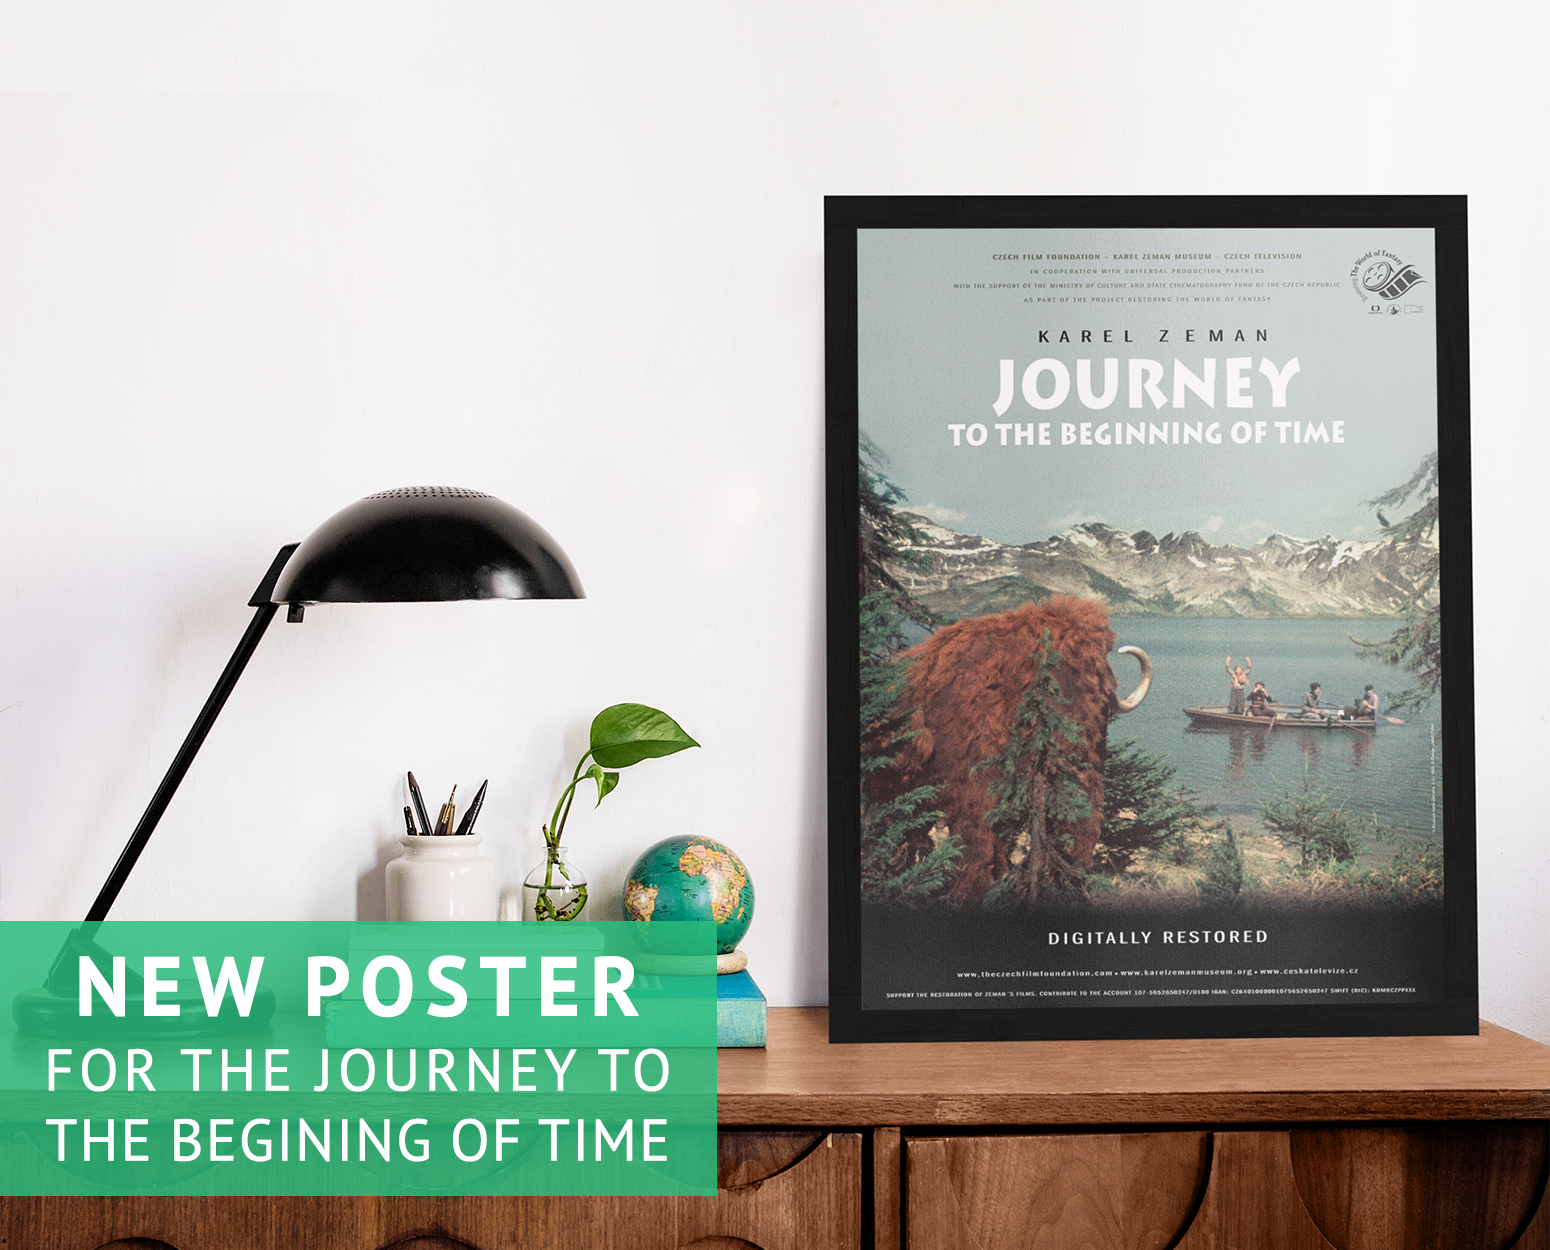 Poster for the Journey to the Beginning of Time